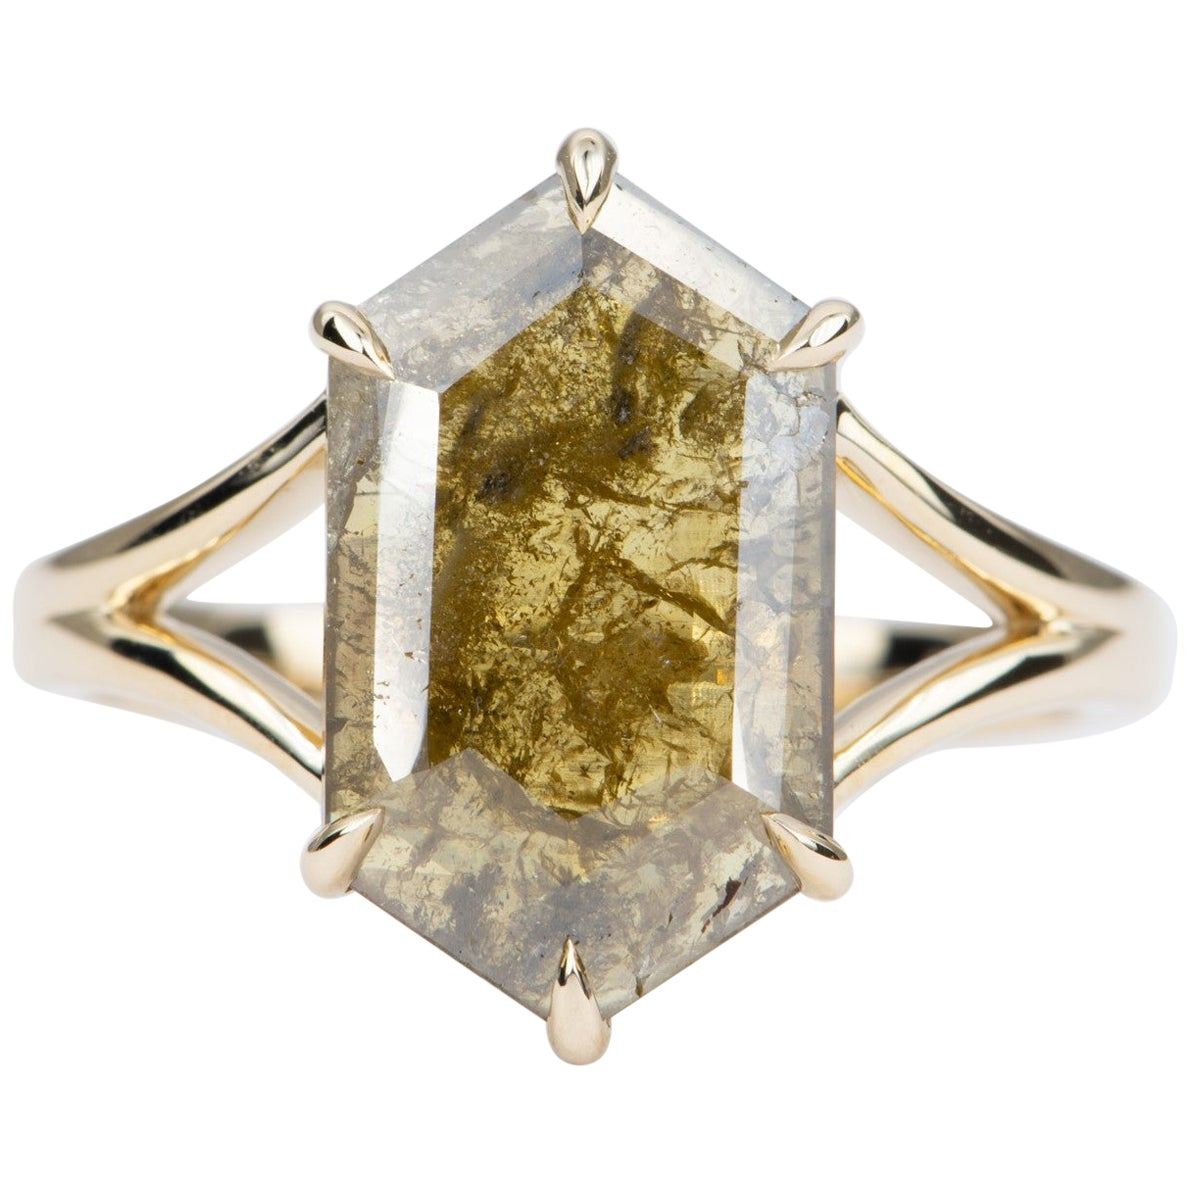 2.88 Carat Salt and Pepper Hexagon Diamond 14 Karat Yellow Gold Ring AD2220-4